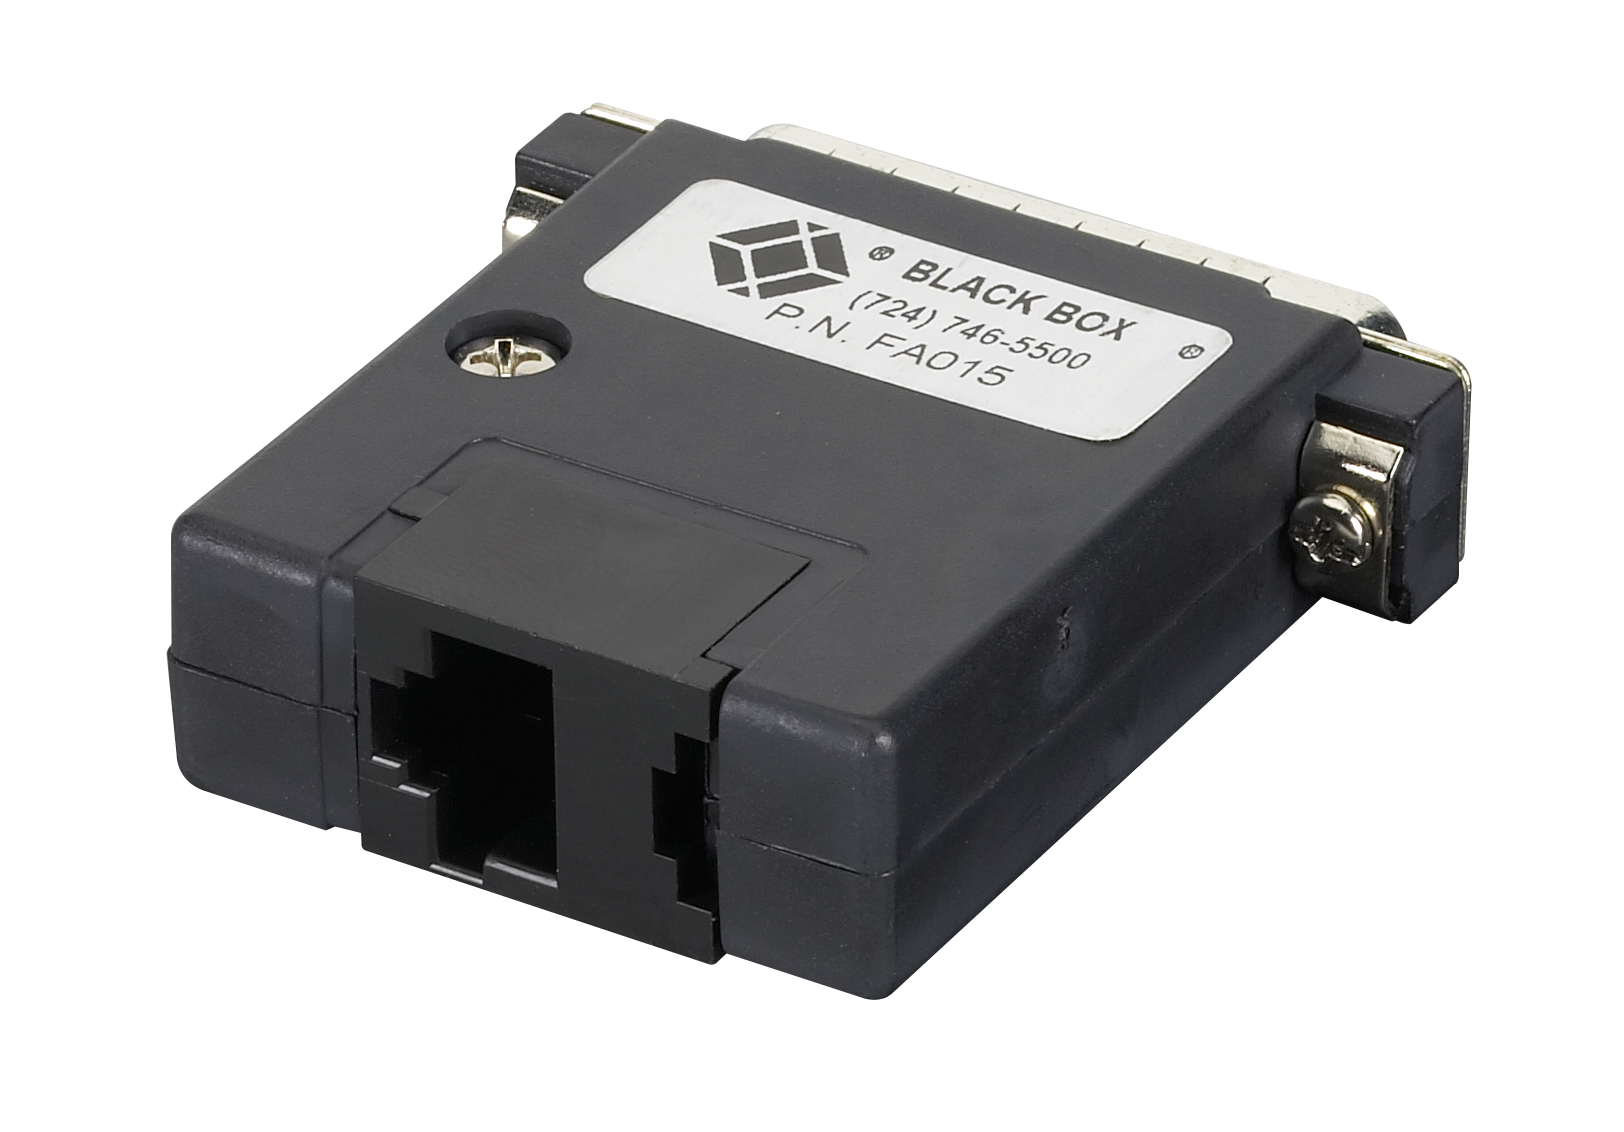 Pre-Wired Modular Adapter DB25 Female To RJ11 4/6-Wire | Black Box